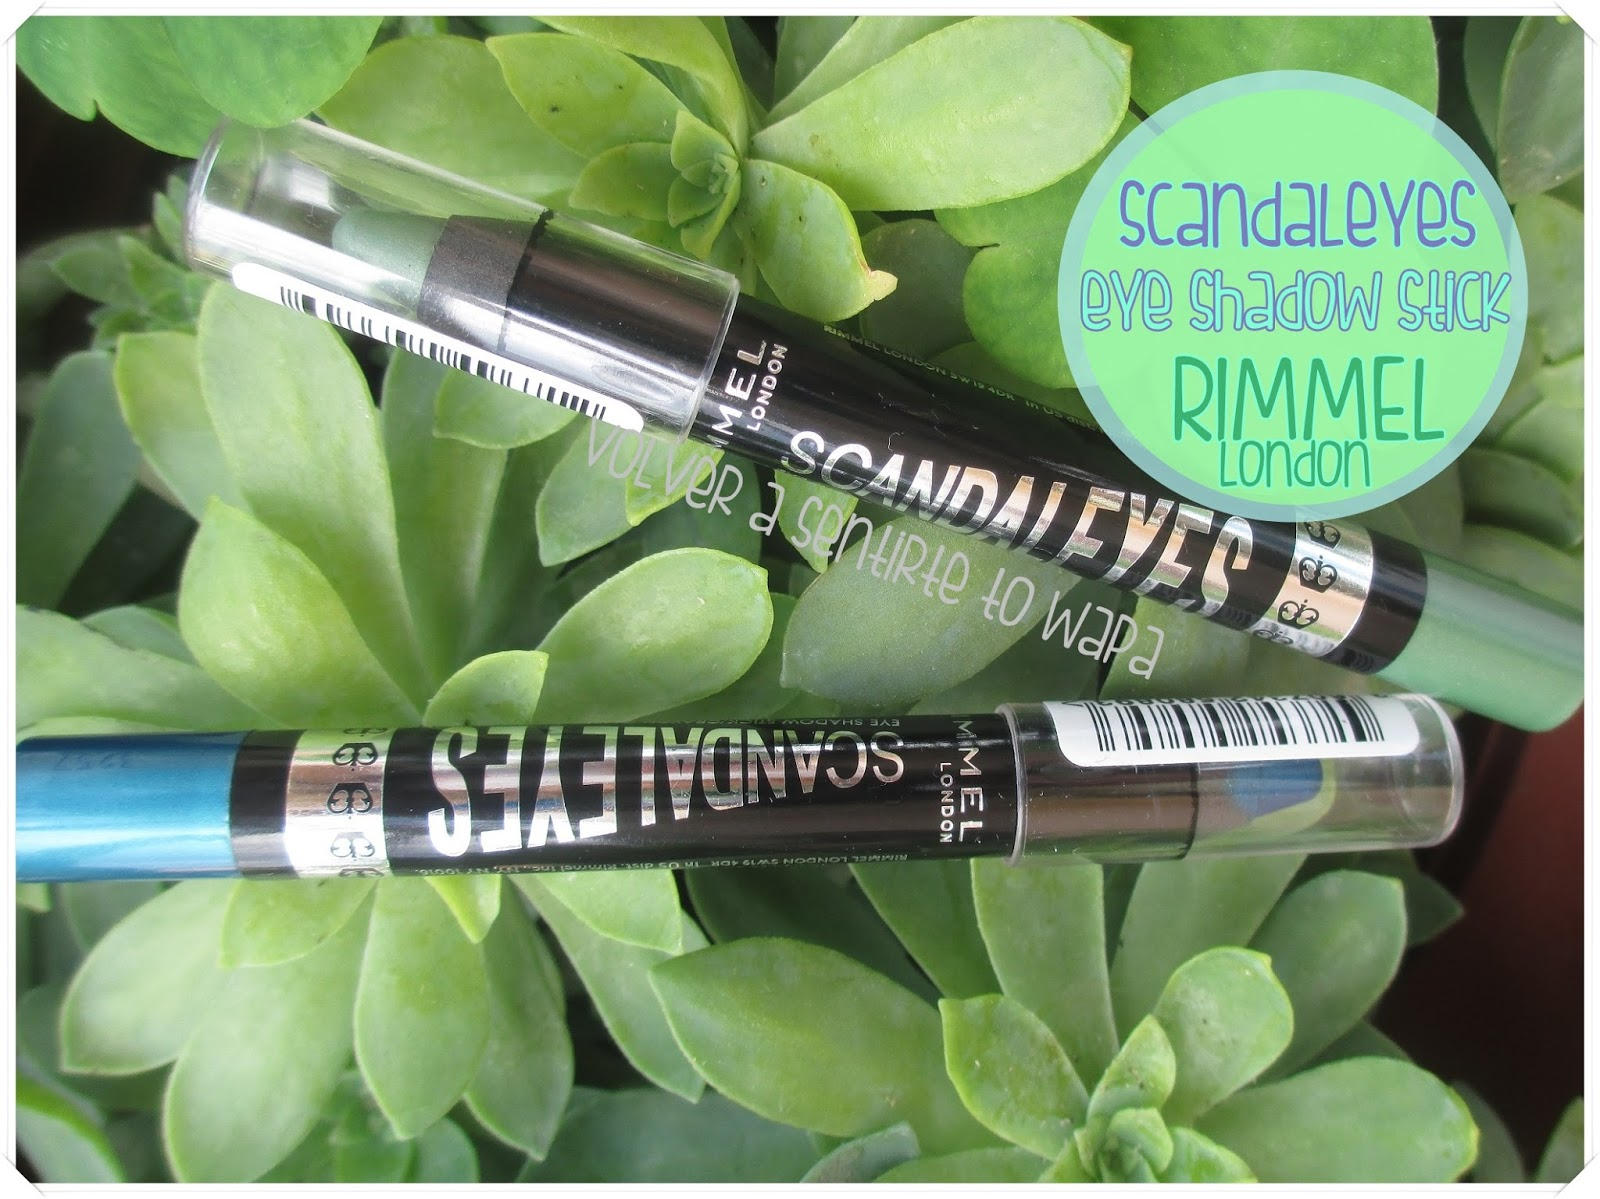 Scandaleyes Eye Shadow Stick de Rimmel London